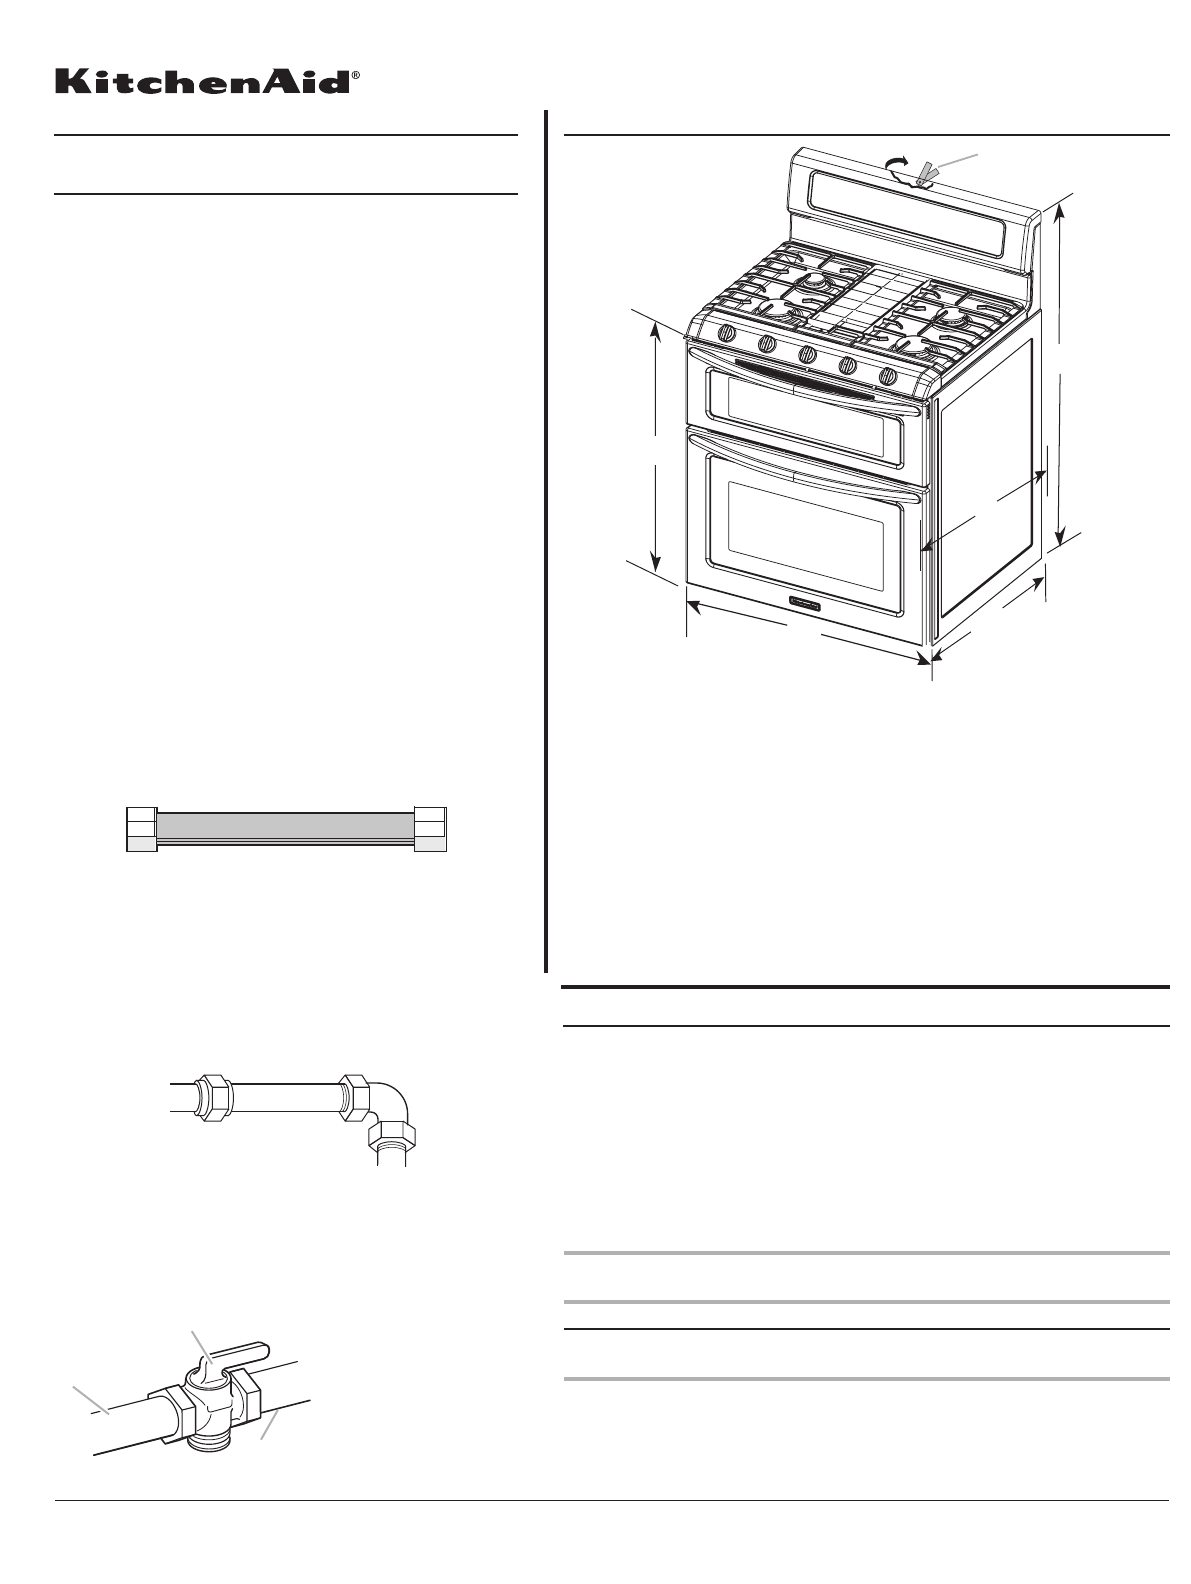 Kitchenaid Double Oven Kdrs505x User Guide Manualsonline Com